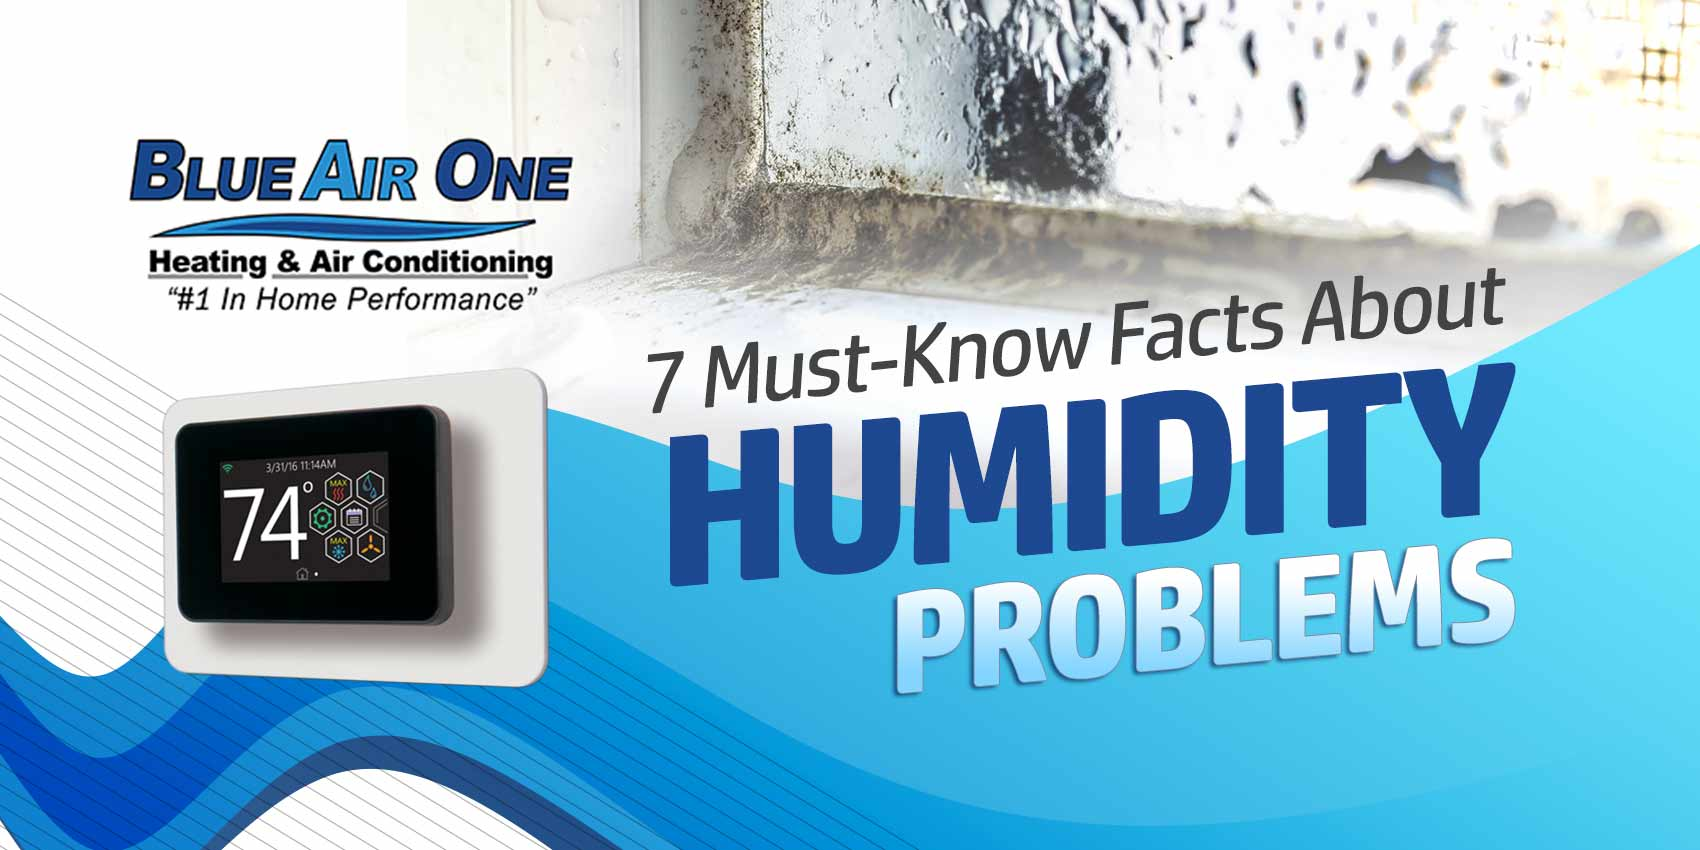 7 MustKnow Facts About Humidity Problems